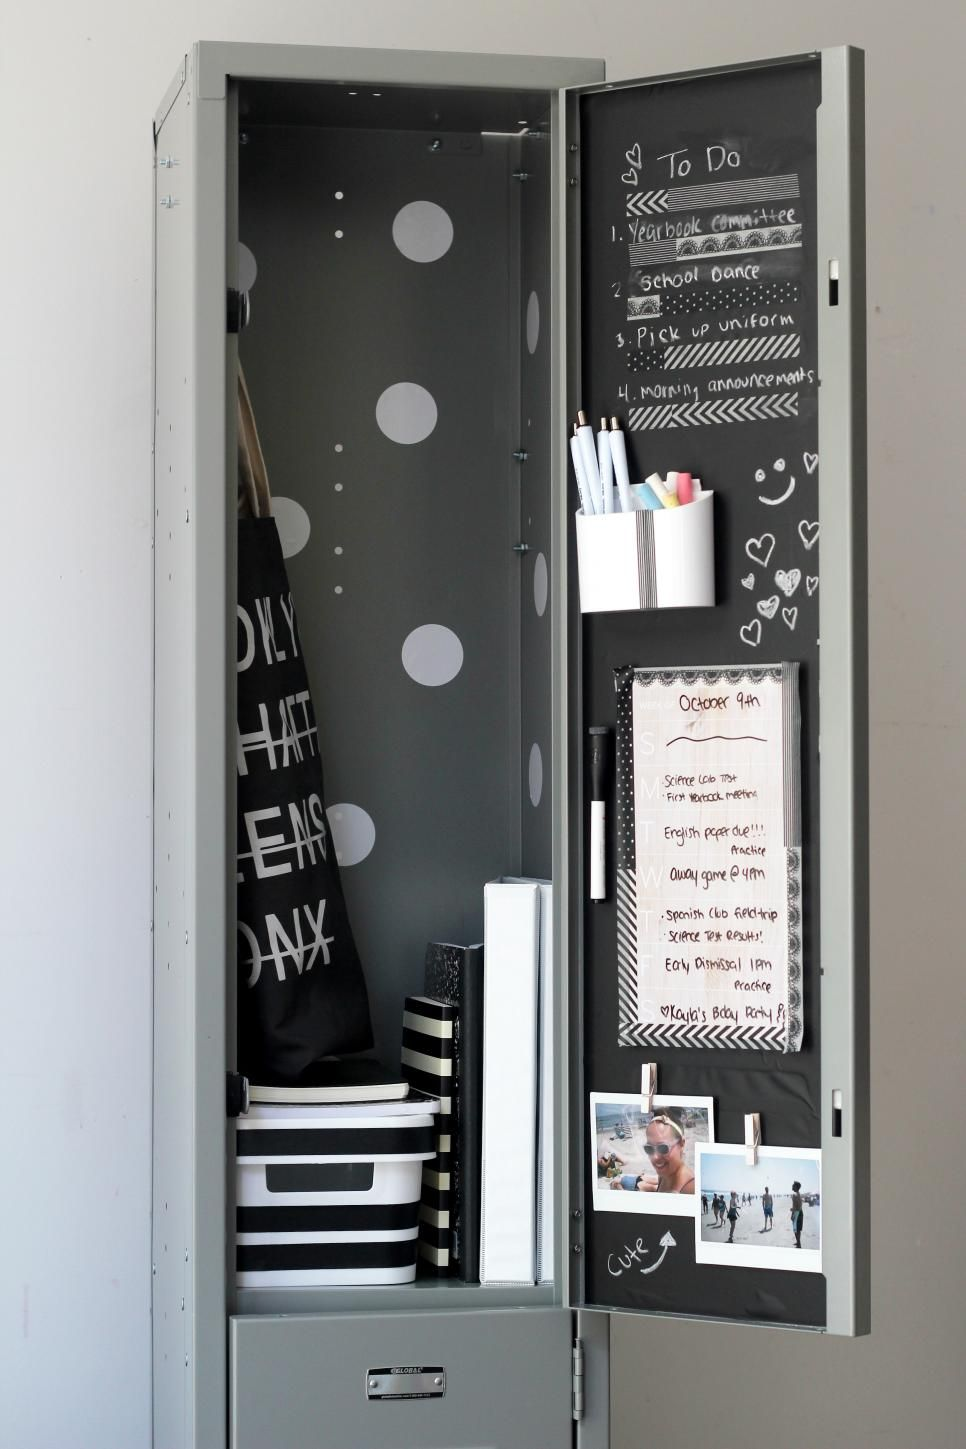 Locker Decoration Ideas 22 diy locker decorating ideas | diy locker, lockers and hgtv